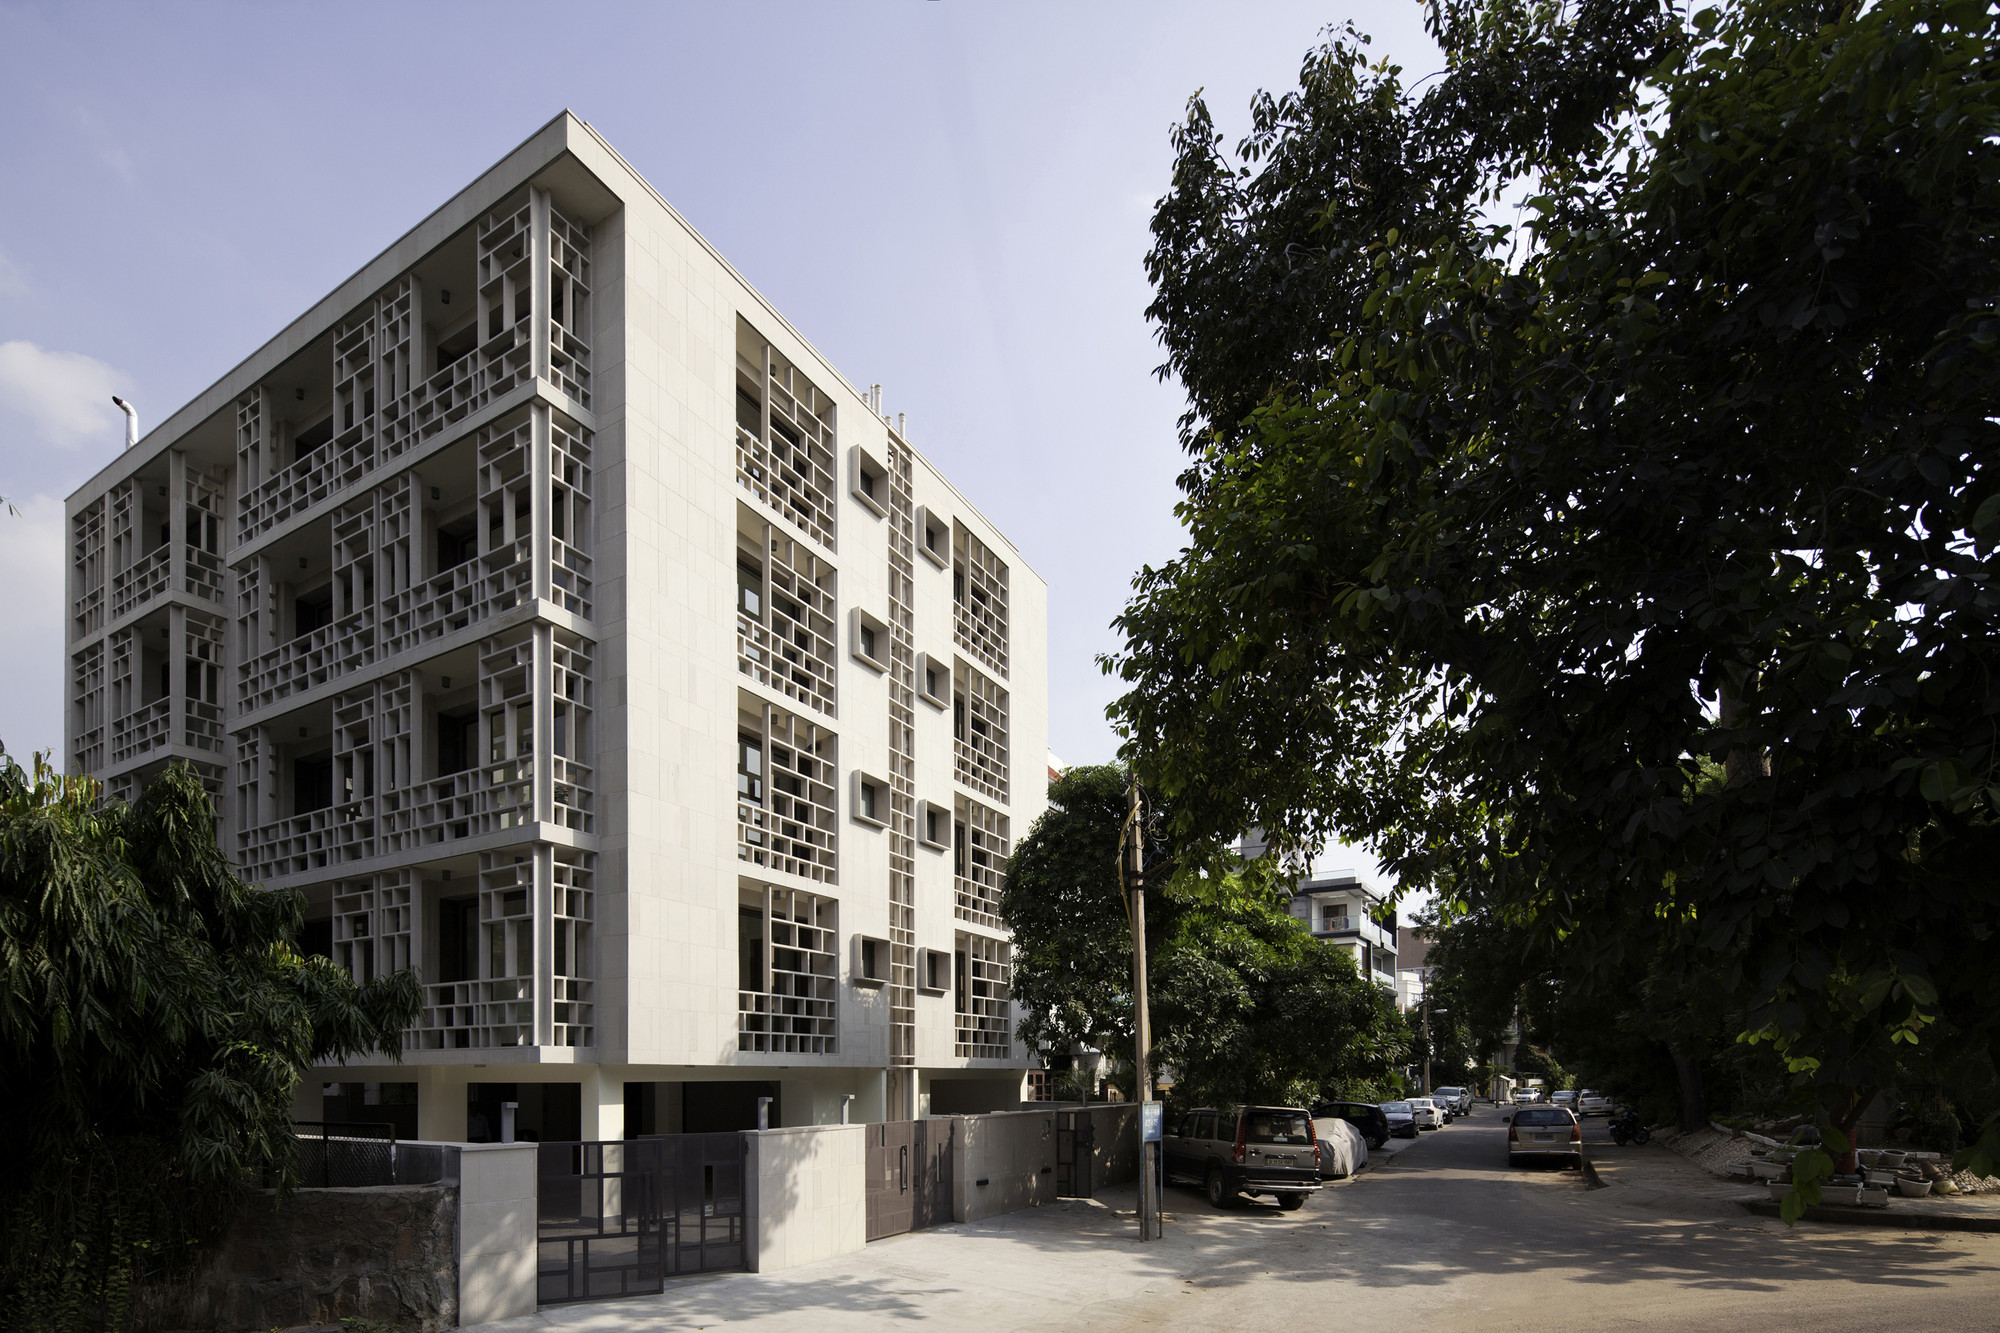 Saxena Apartments / Vir.Mueller Architects, © Andre J. Fanthome